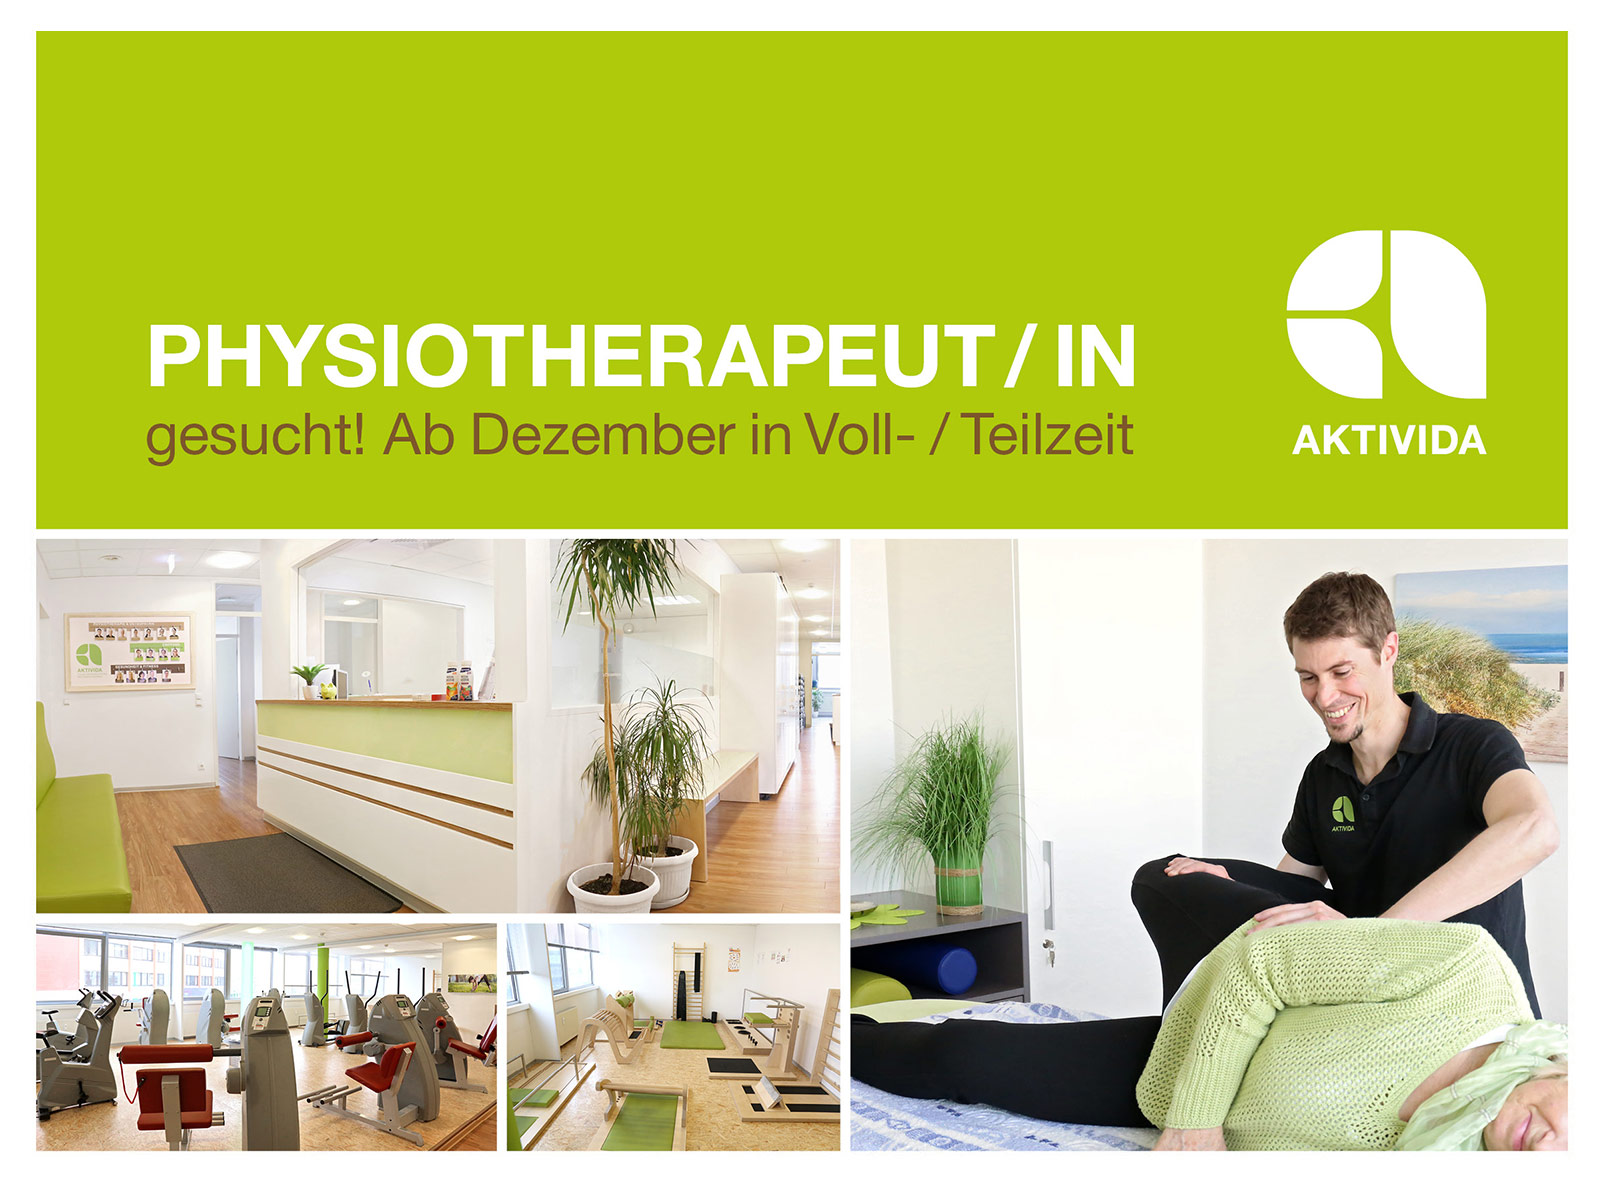 Physiotherapeut-in gesuch AKTIVIDA Leonberg 12-2019